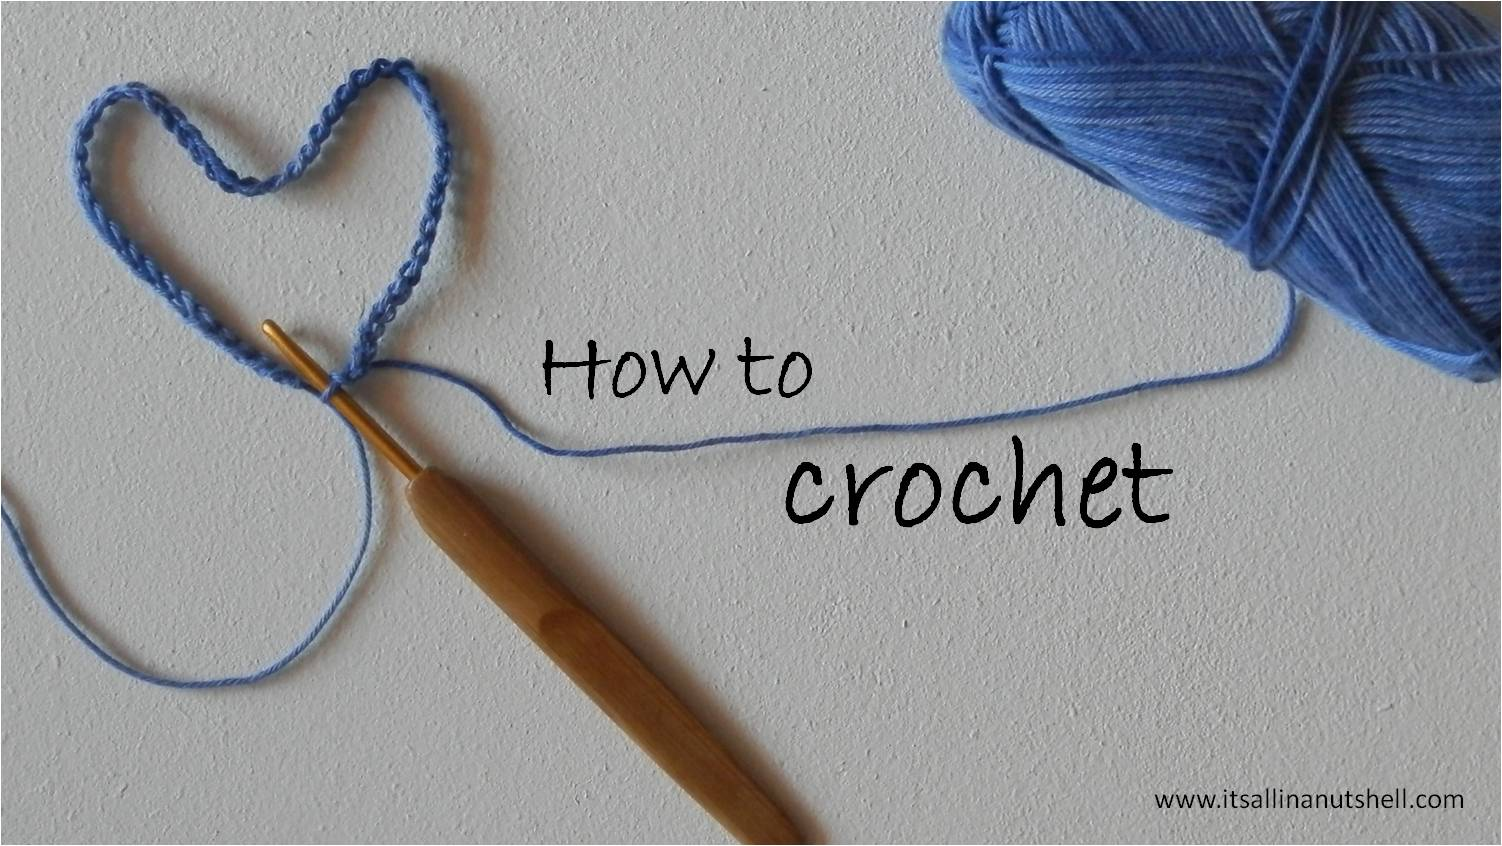 How To Crochet Step By Step Its All In A Nutshell